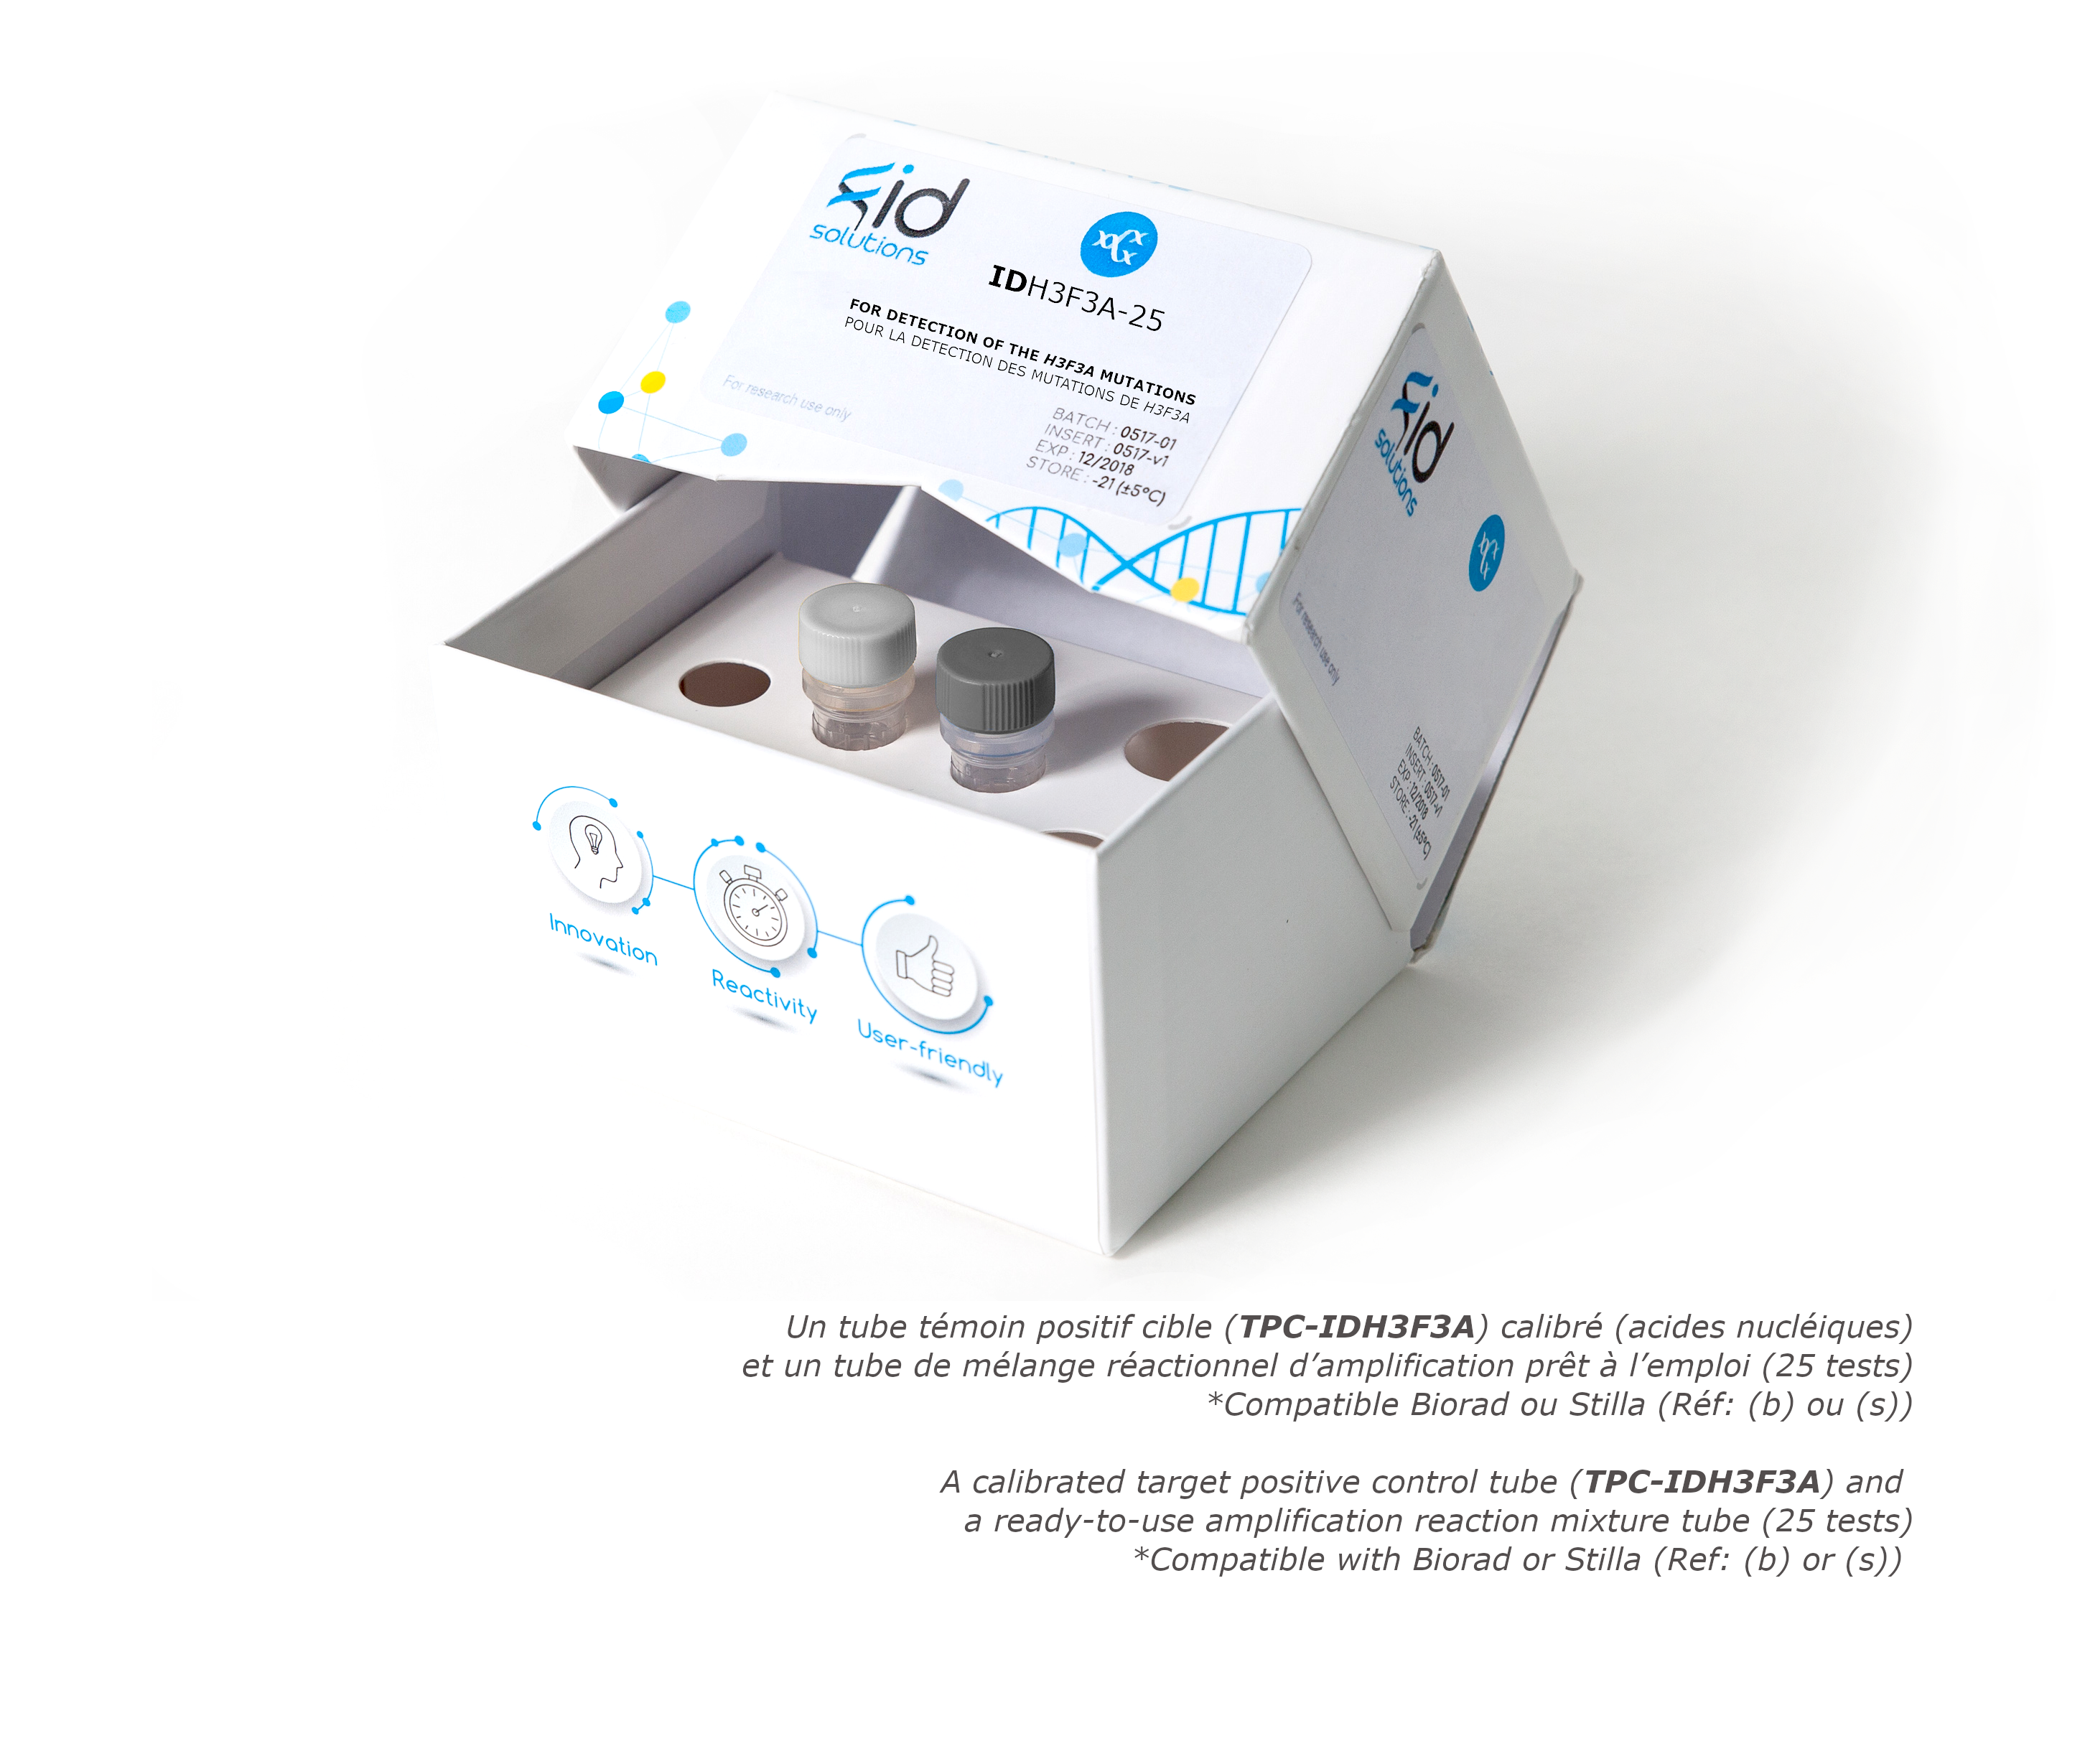 IDH3F3A- Tumor DNA or circulating DNA or ctDNA H3F3A Mutation Detection Kit by Digital PCR